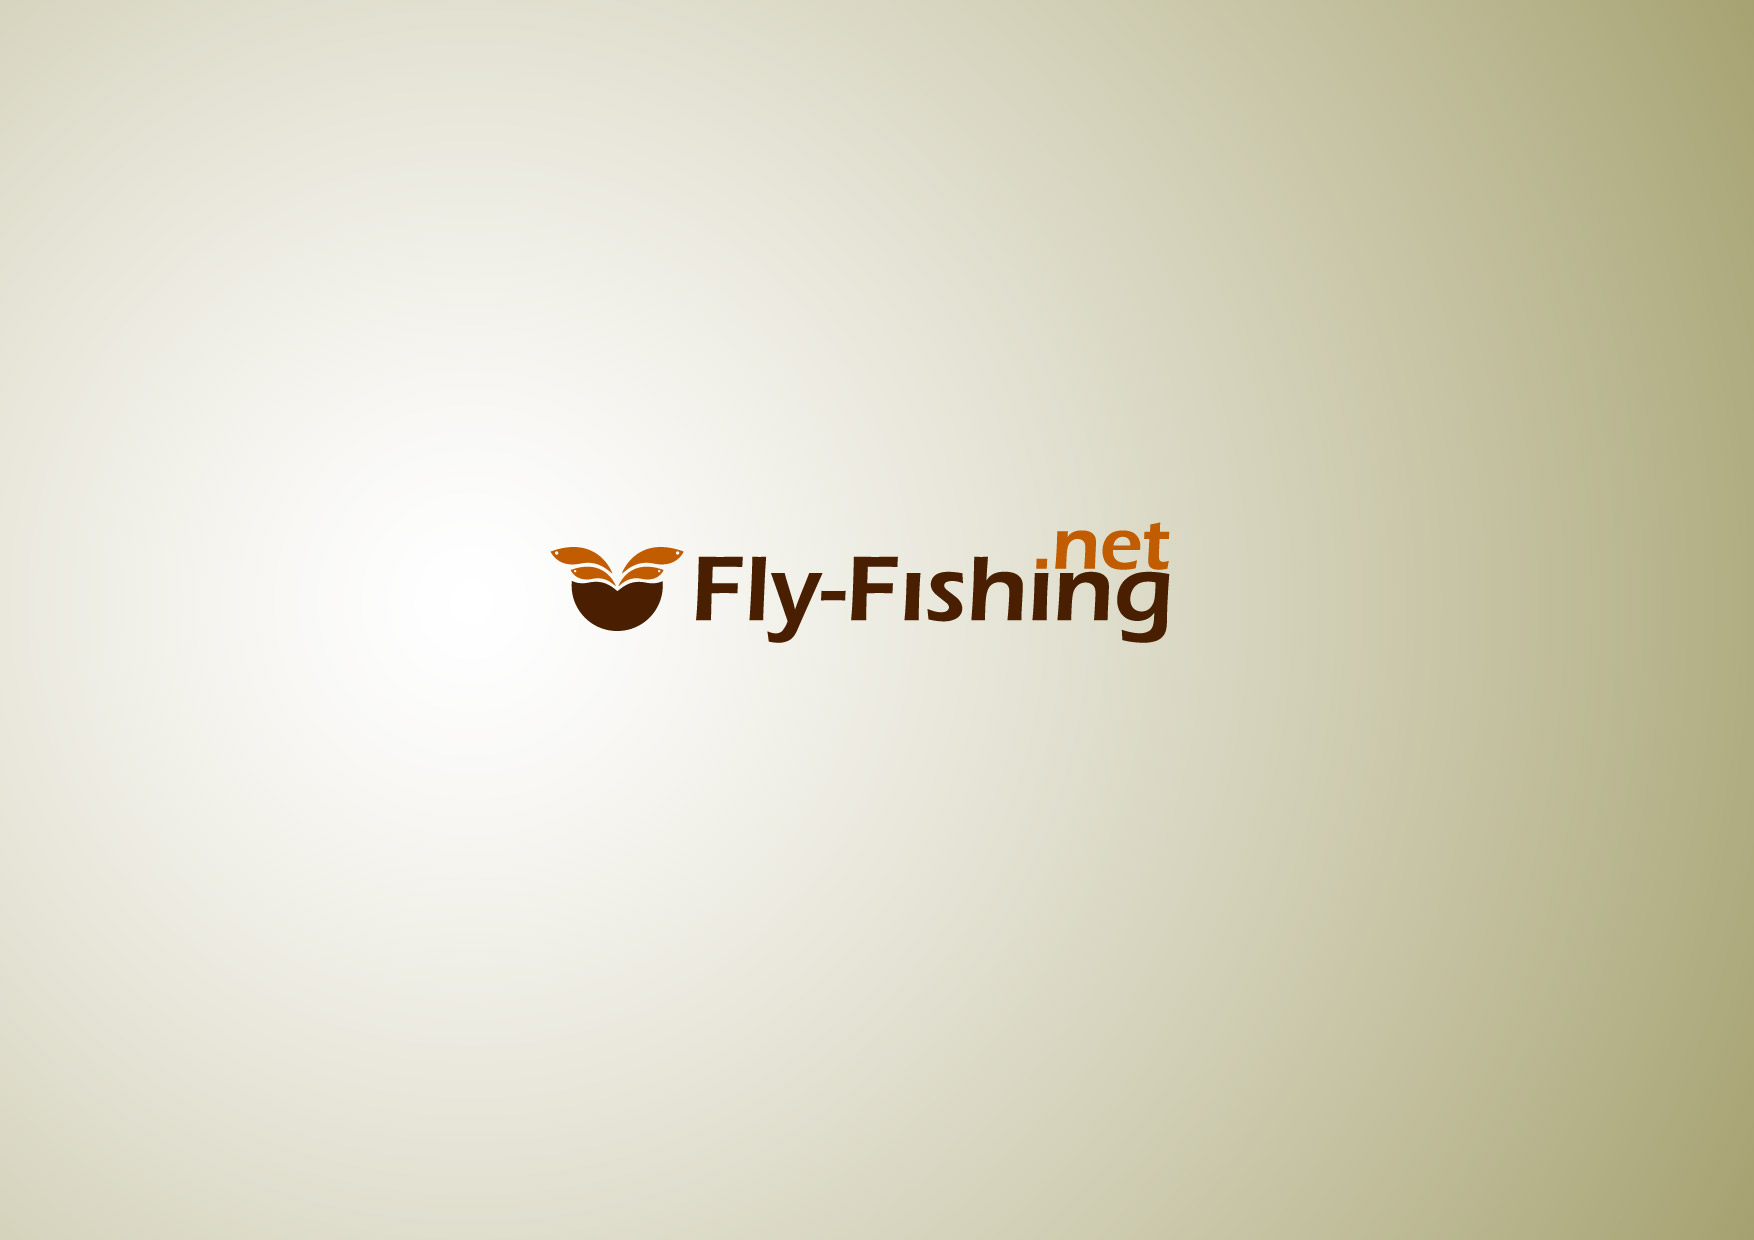 Logo Design by Osi Indra - Entry No. 56 in the Logo Design Contest Artistic Logo Design for fly-fishing.net.